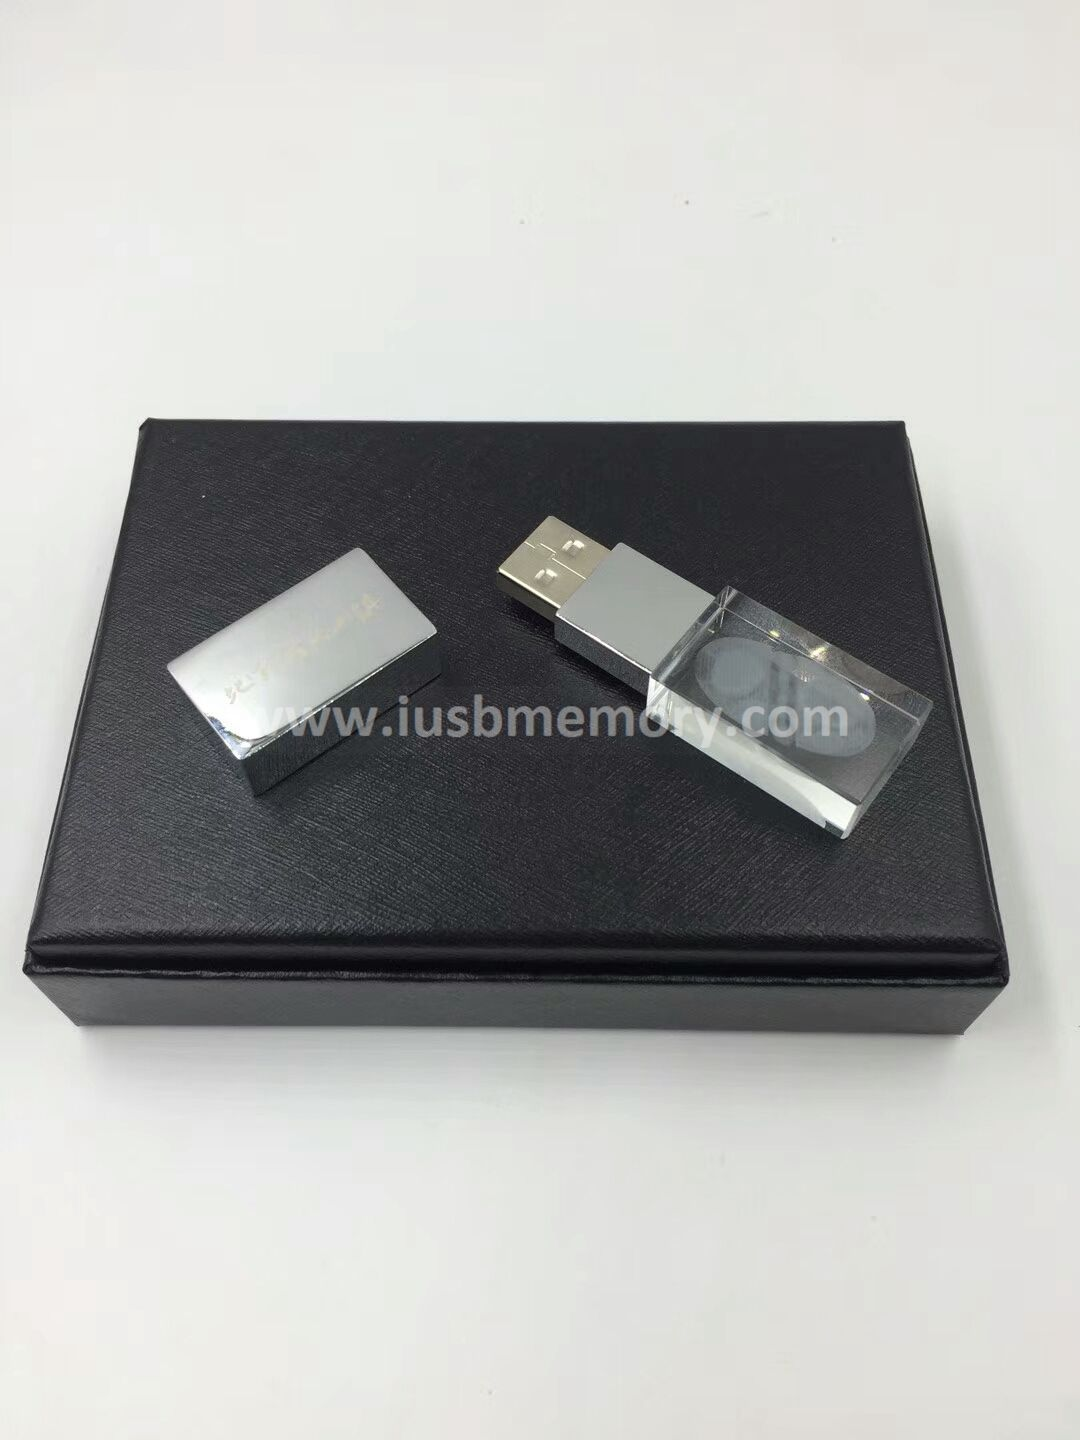 SR-011 crystal usb memory with LED light